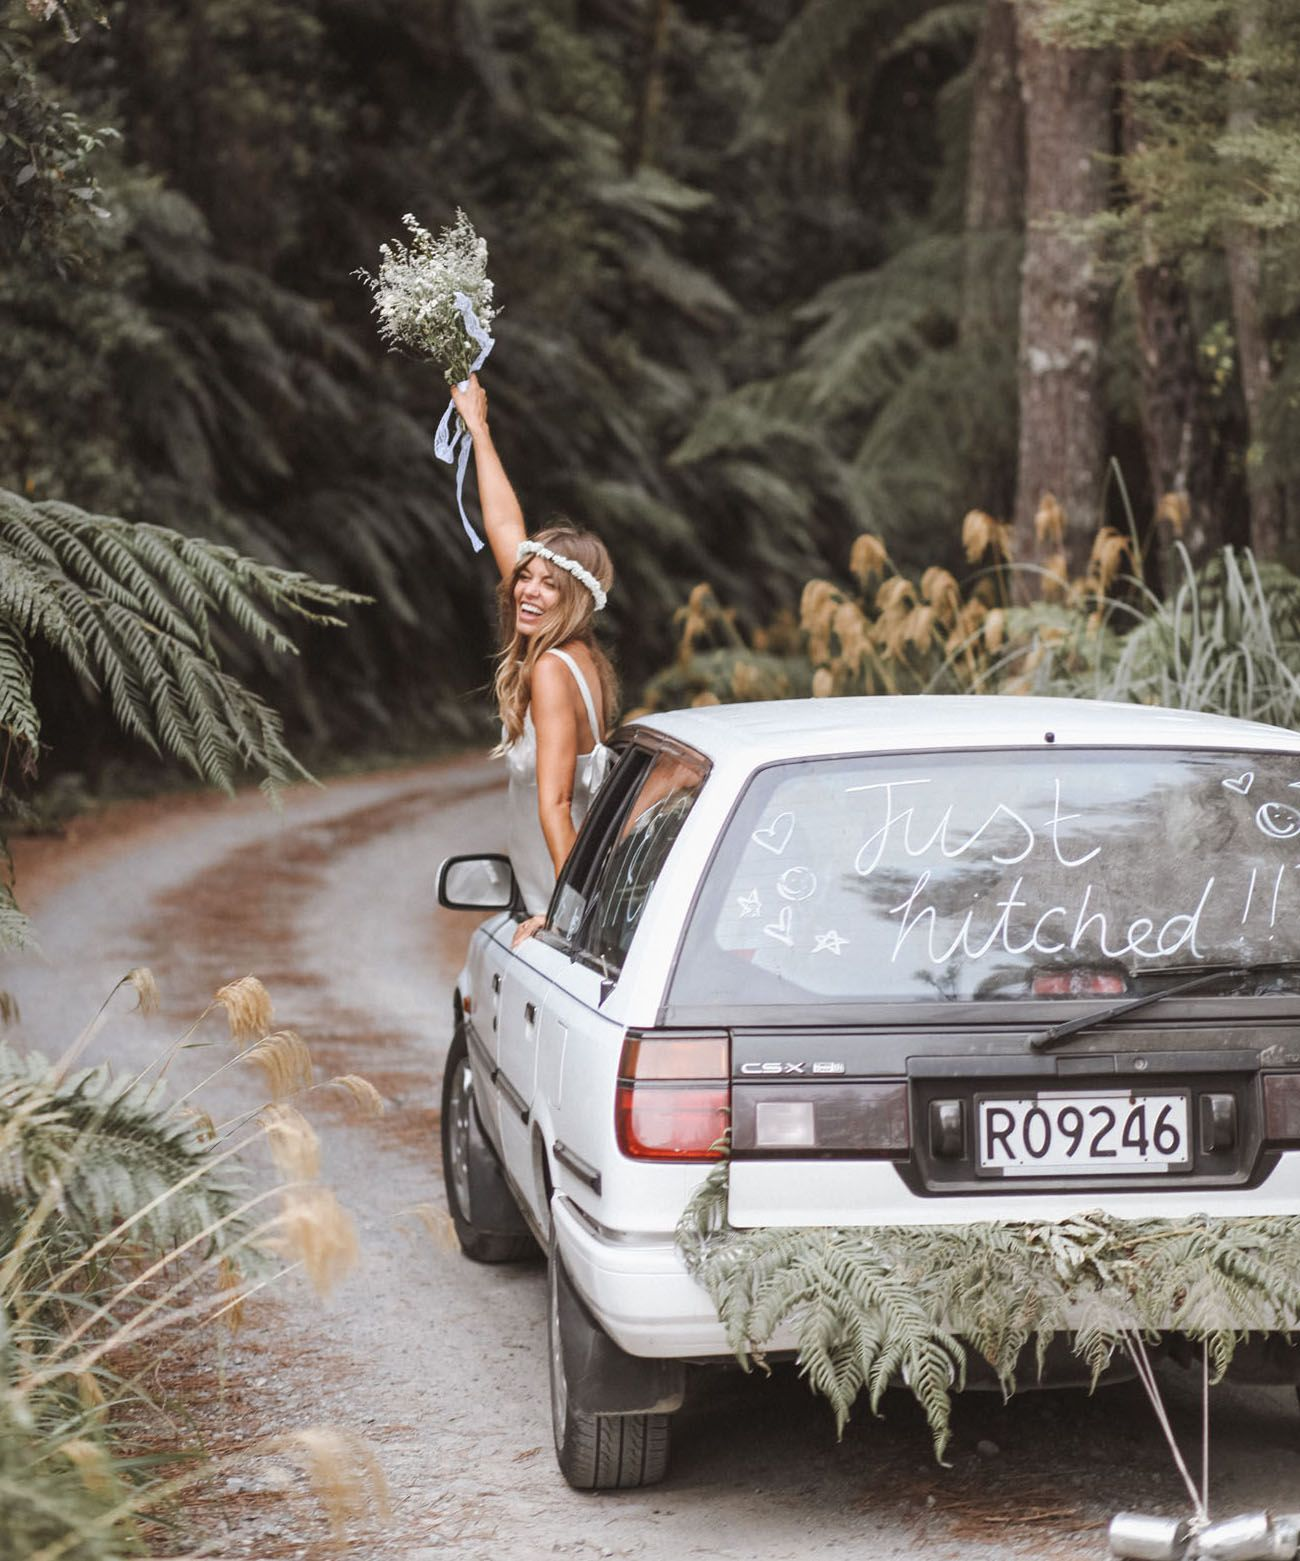 Bridal Shoes Auckland New Zealand: A Glamping Wedding Full Of Wonder + Whimsy For Bohemian